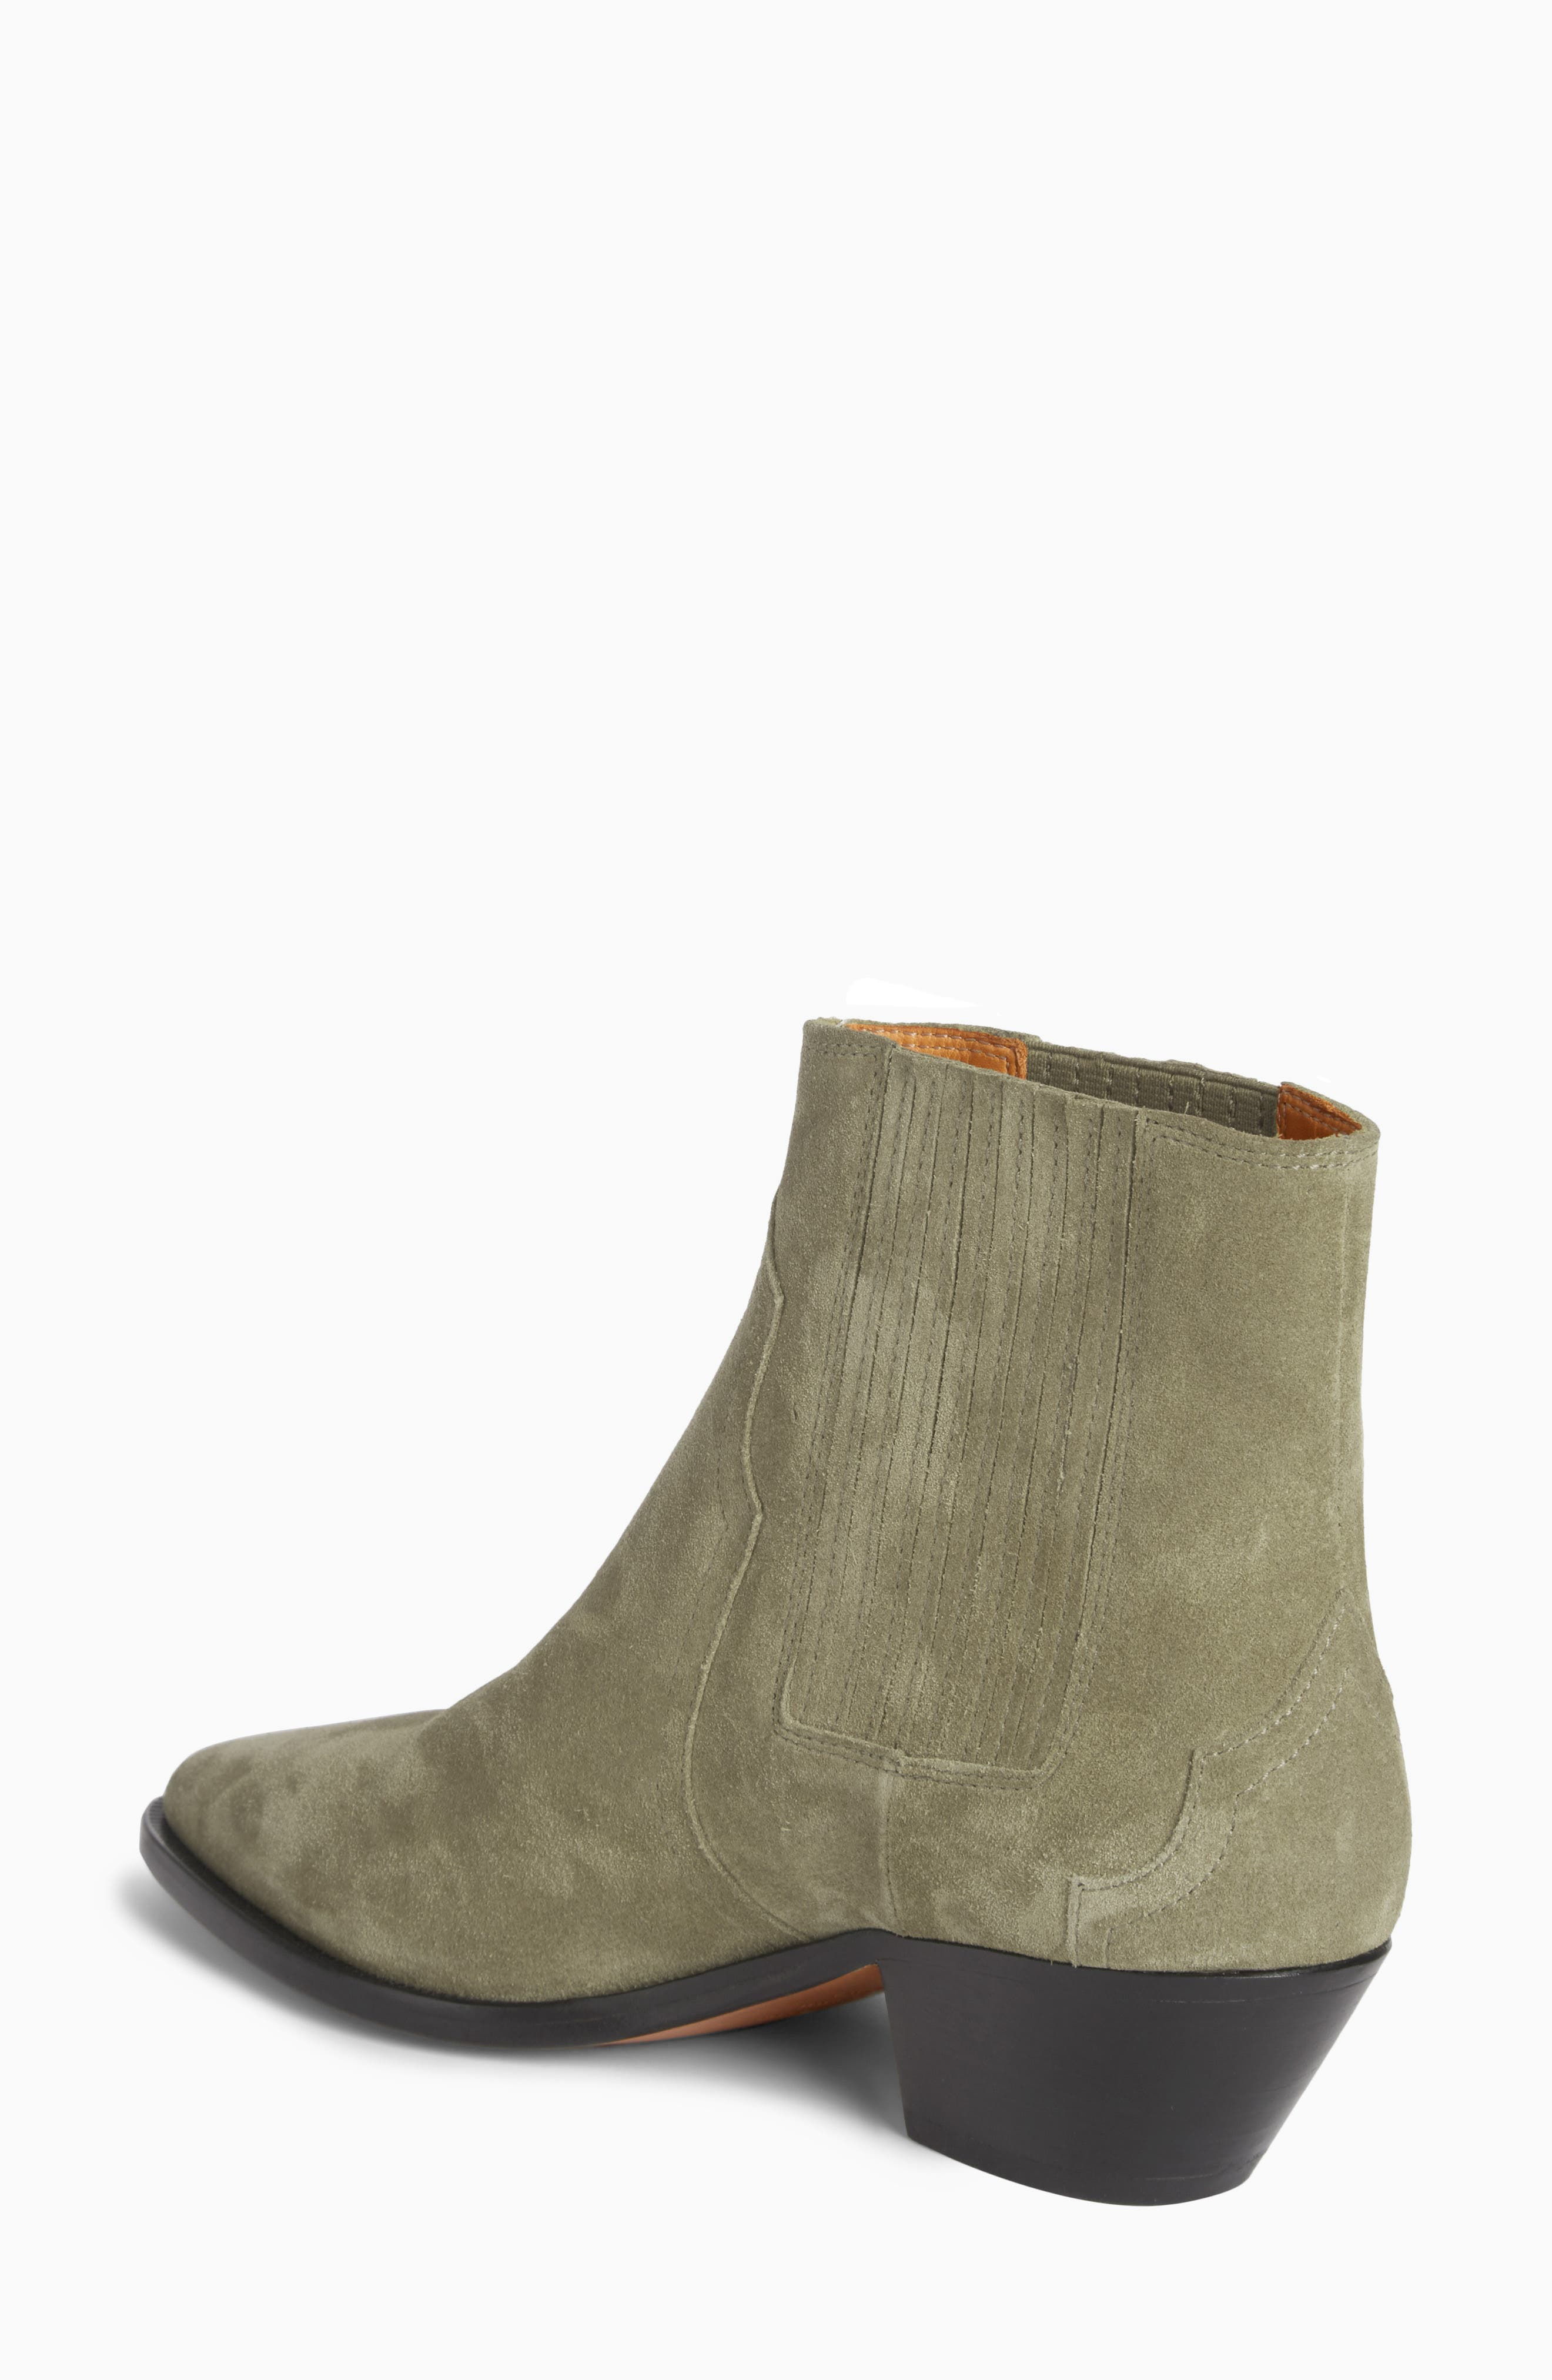 Derlyn Pointy Toe Boot,                             Alternate thumbnail 2, color,                             300